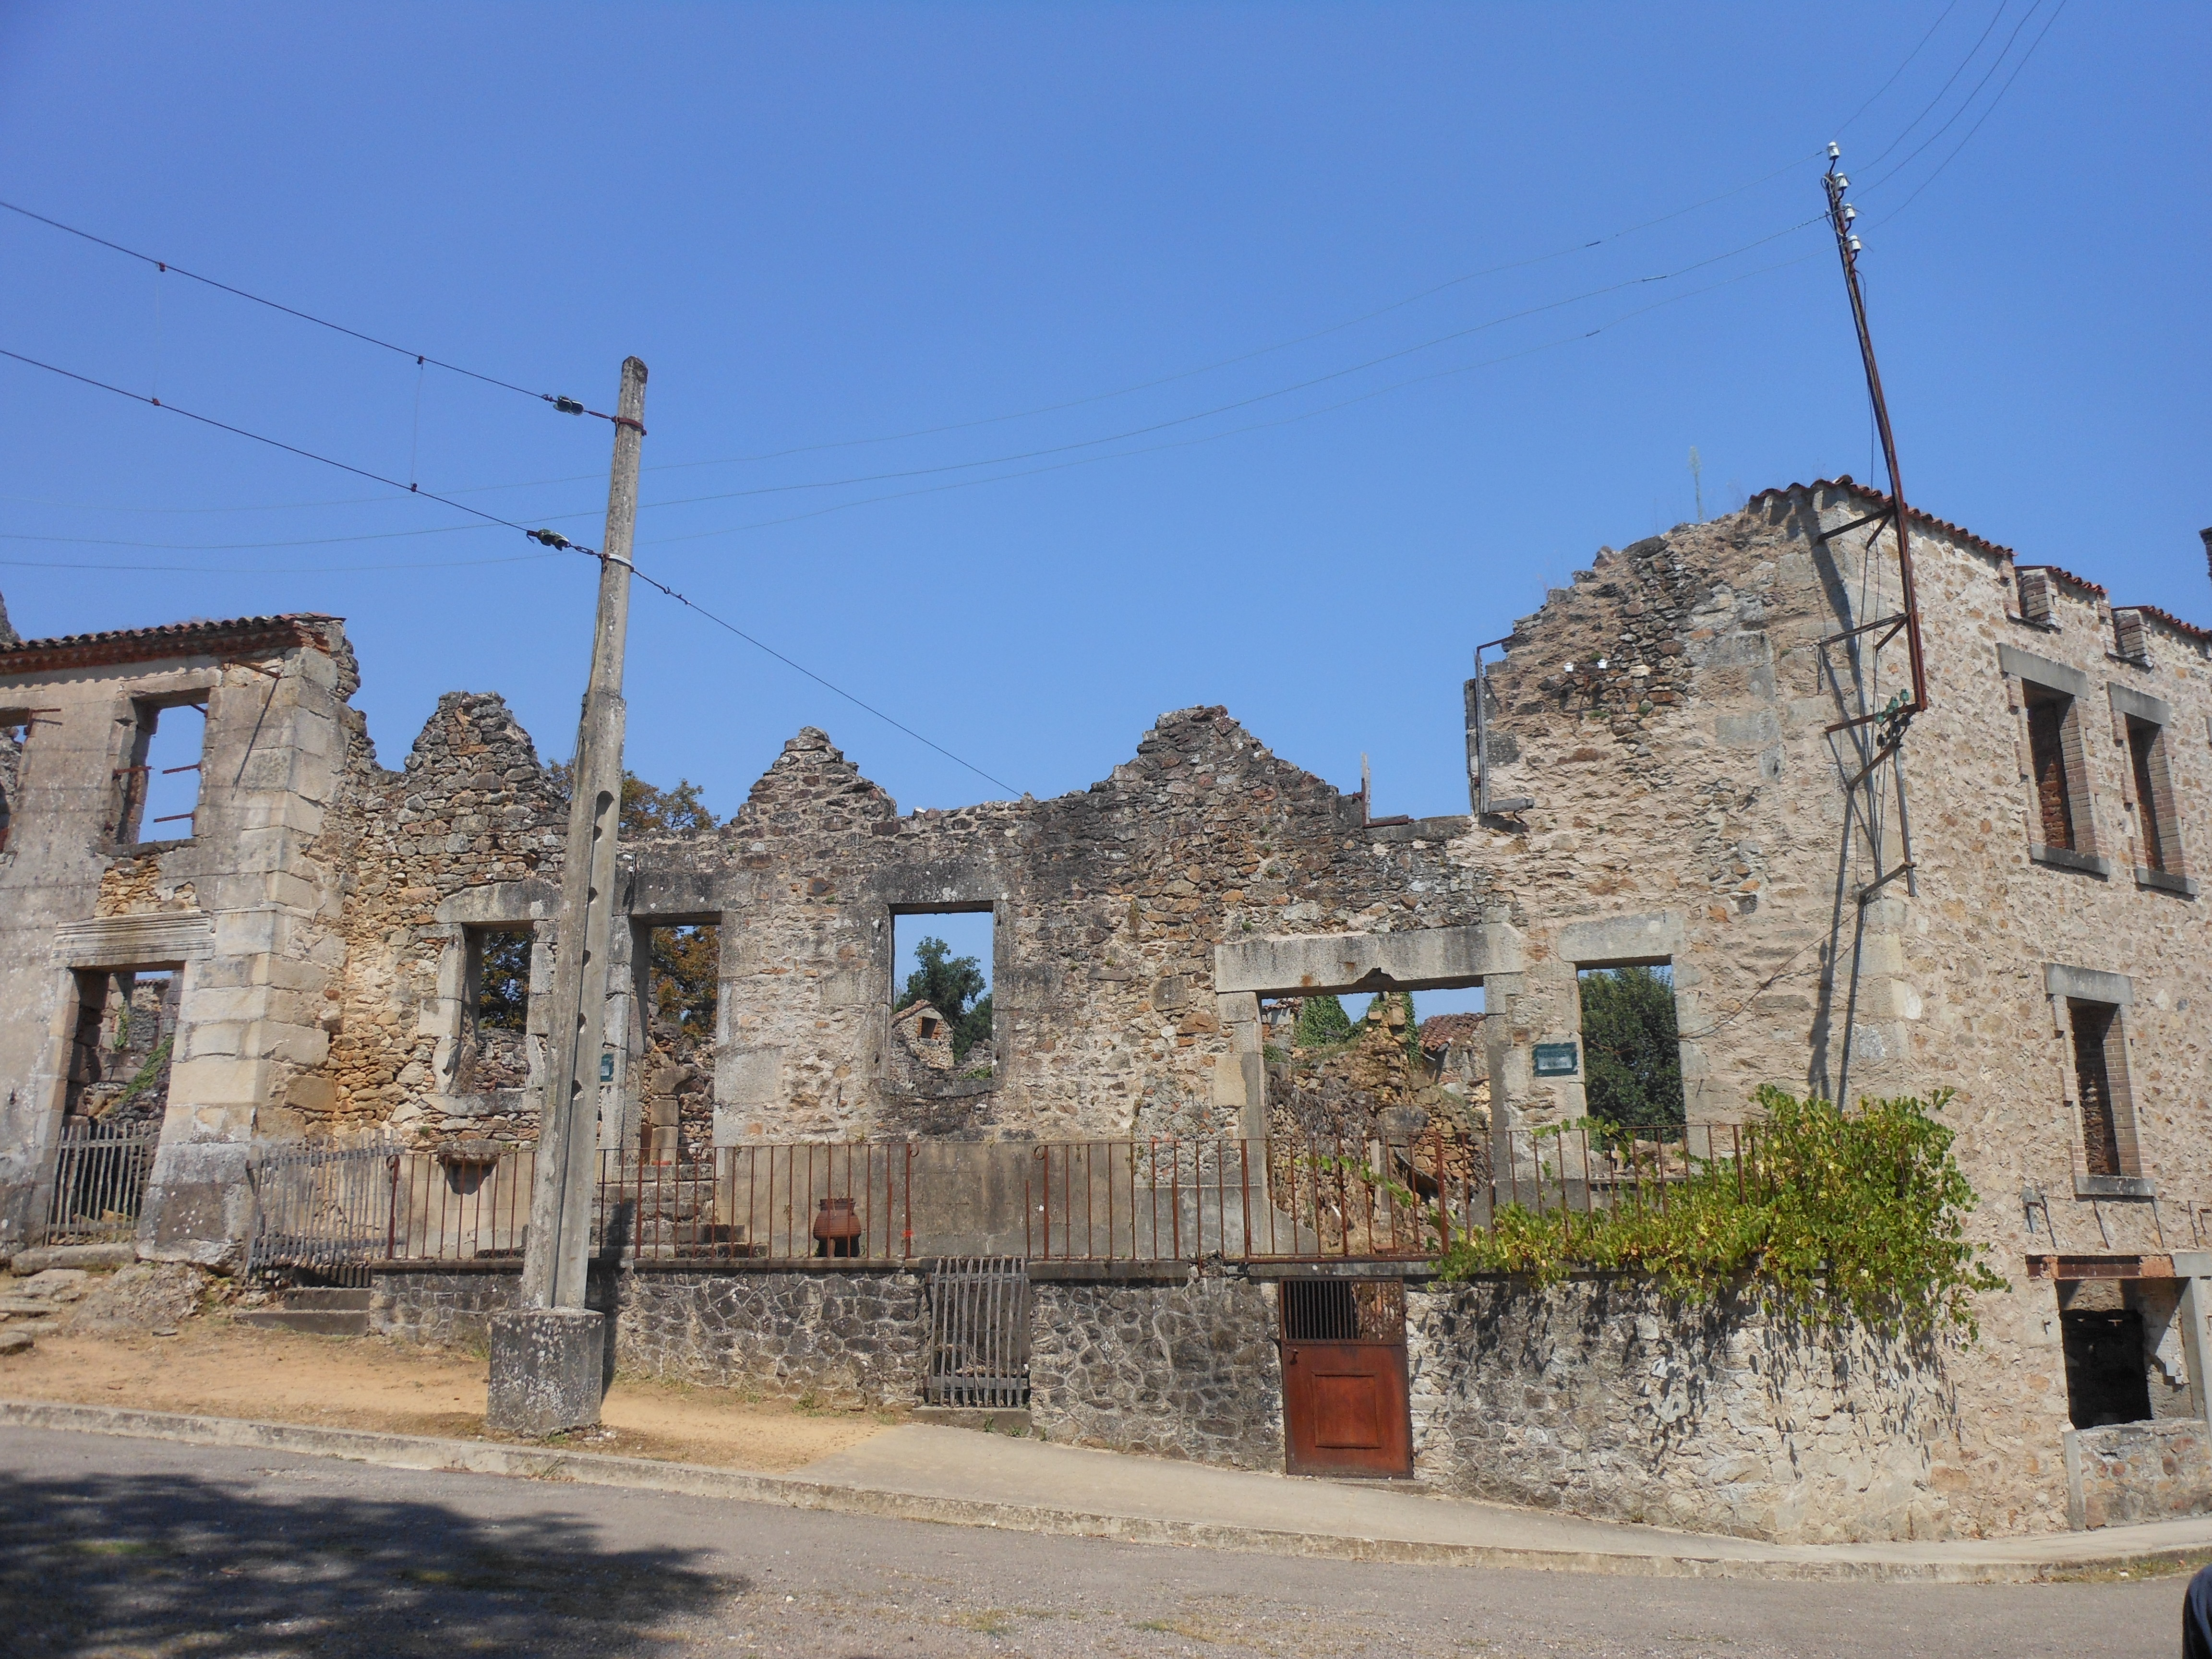 The ruins of Oradour-sur-Glane damaged by Nazi flames